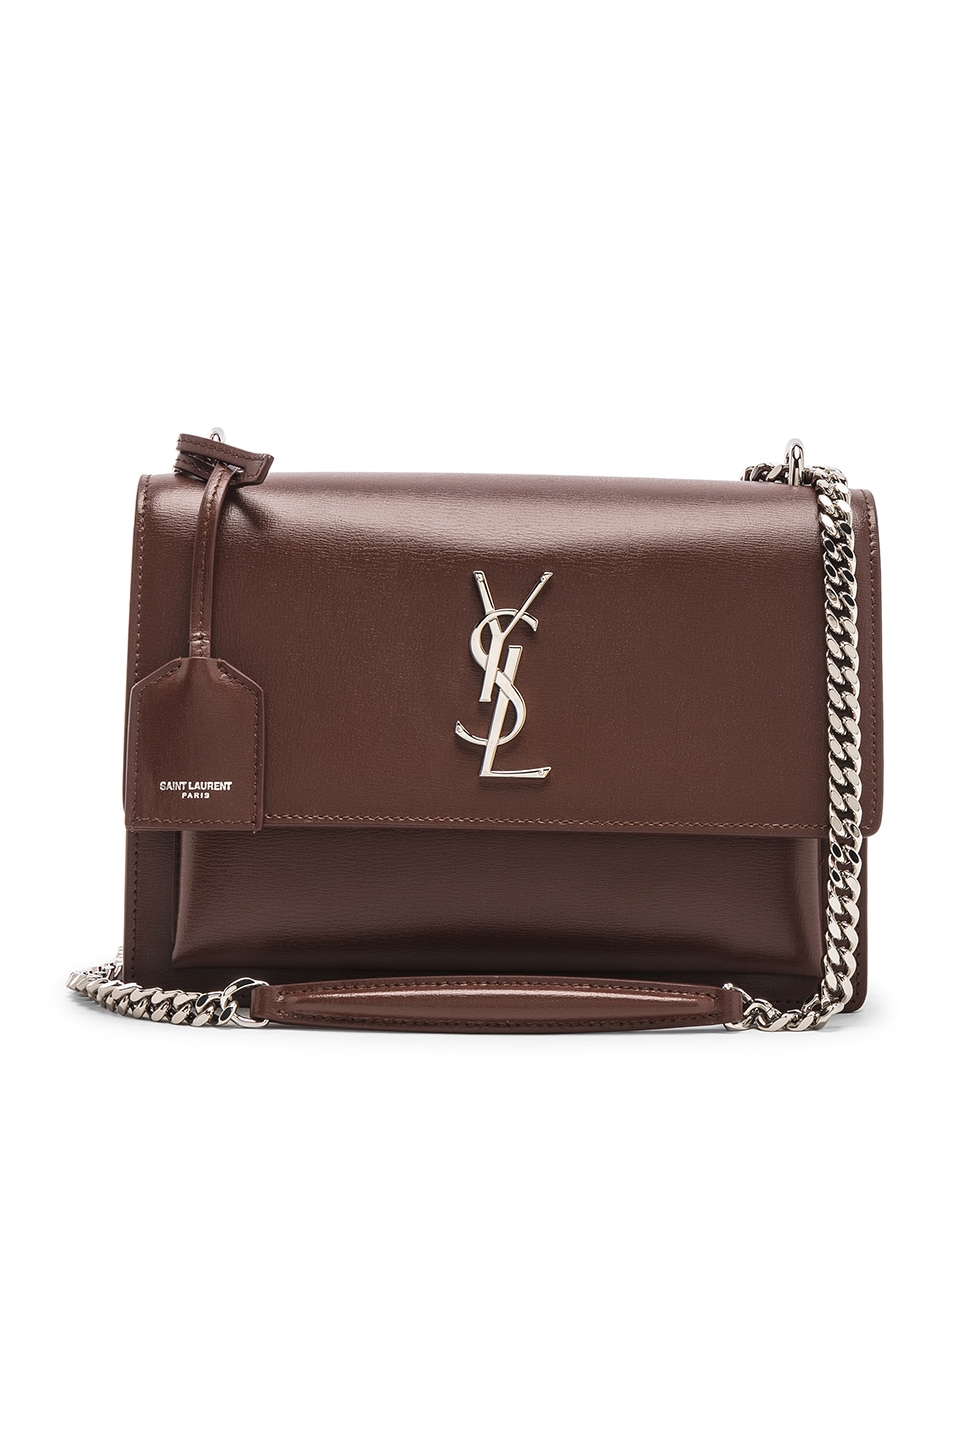 Image 1 of Saint Laurent Monogramme Sunset Shoulder Bag in Old Brandy